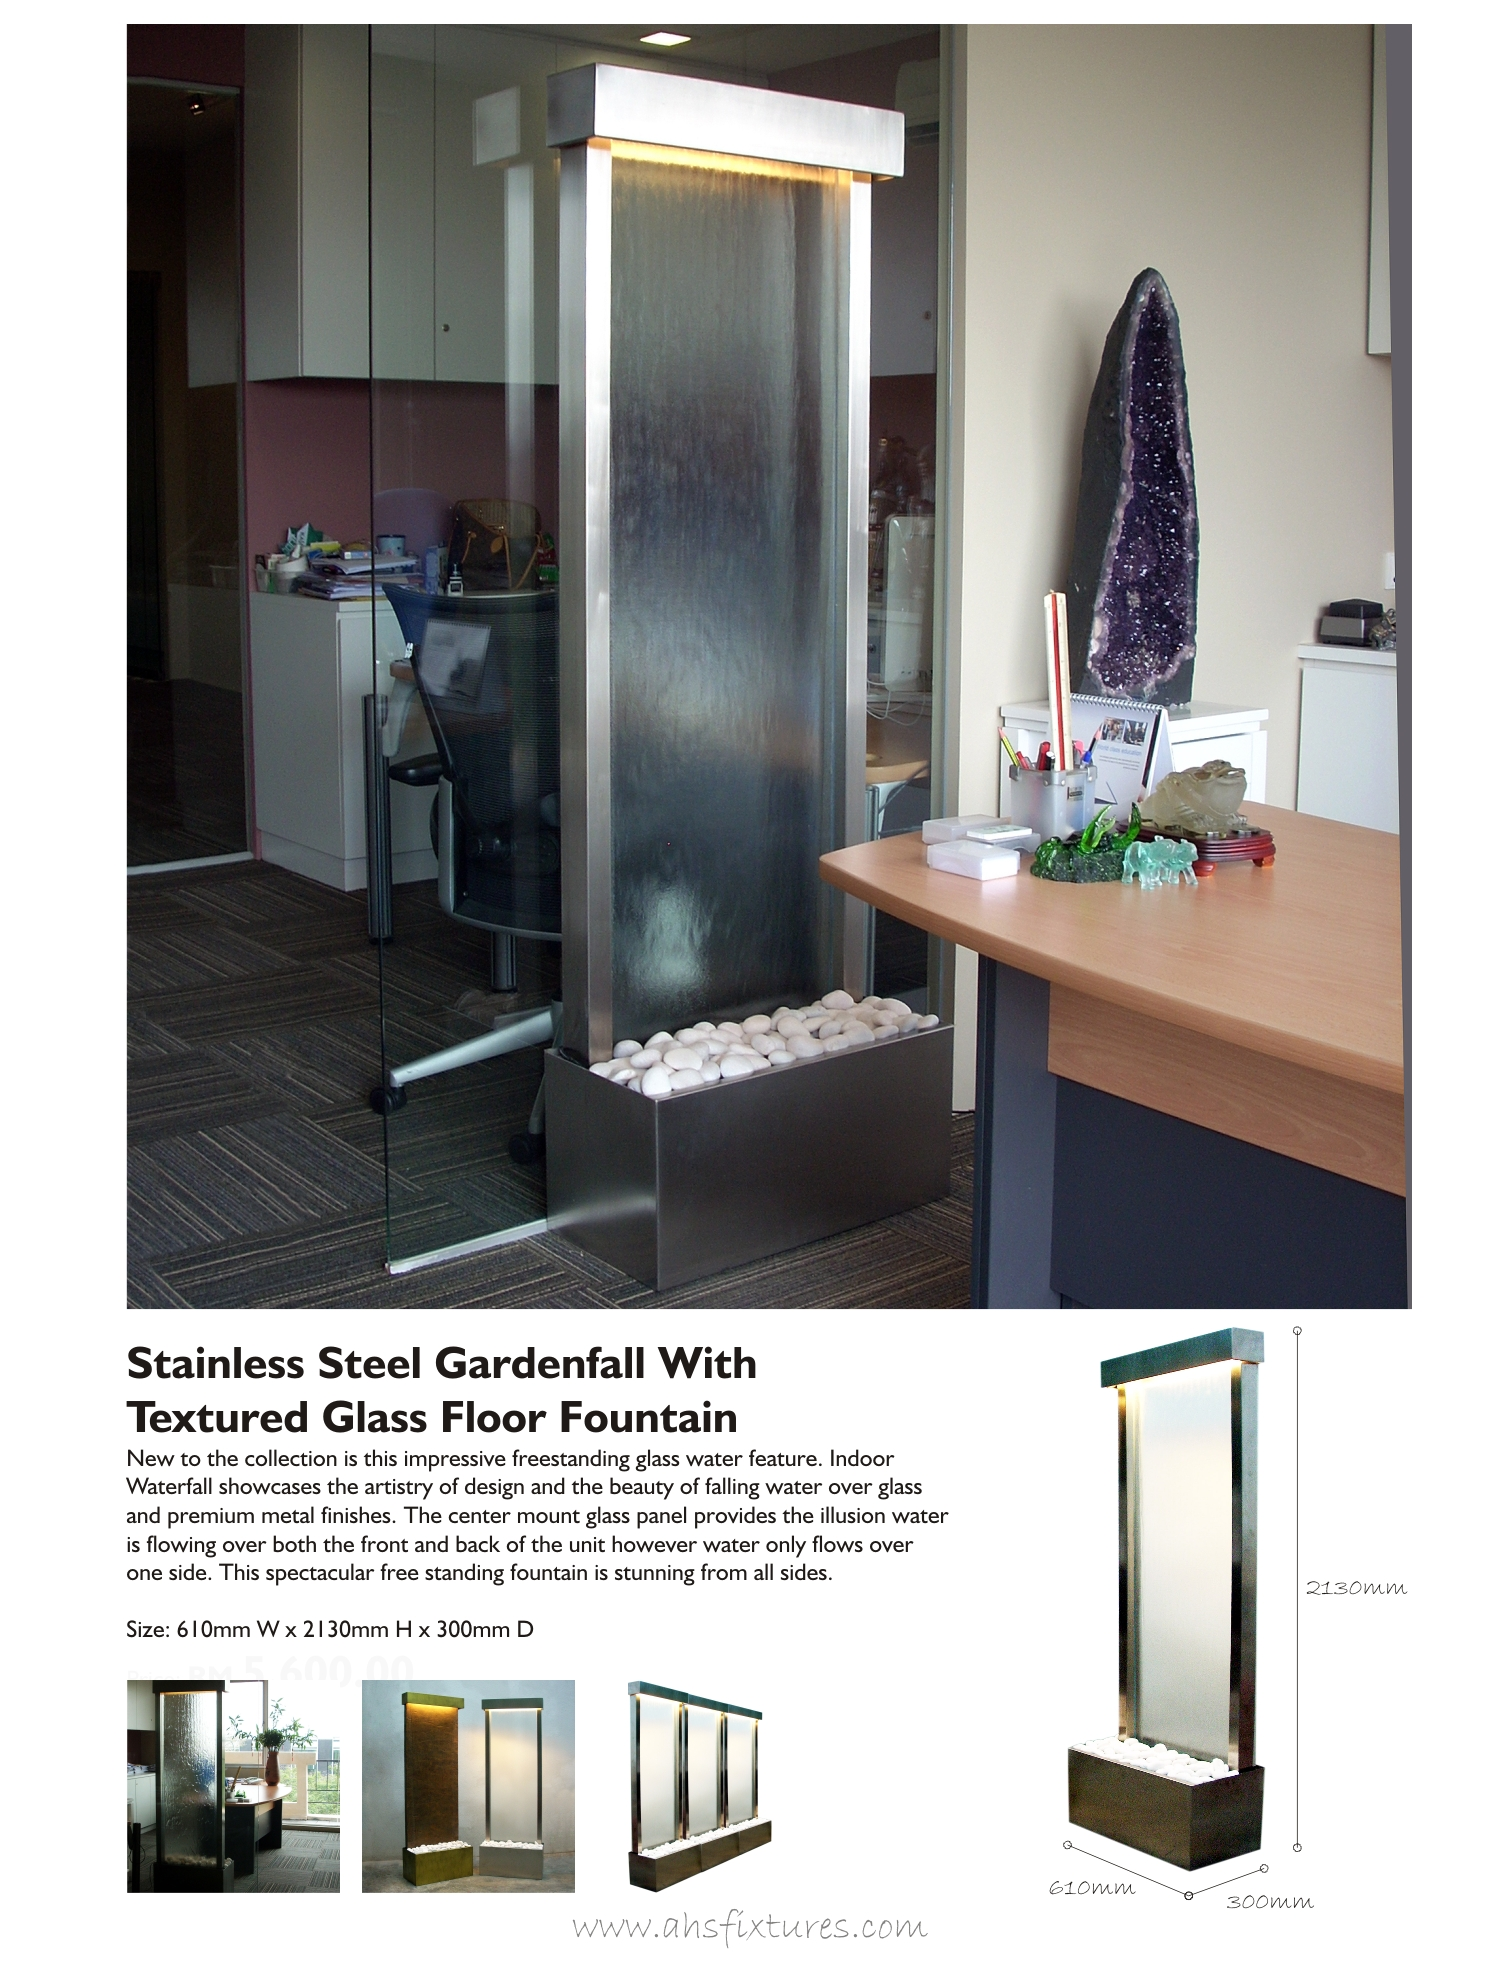 WFG-610 Stainless Steel Gardenfall With Textured Glass Floor Fountain